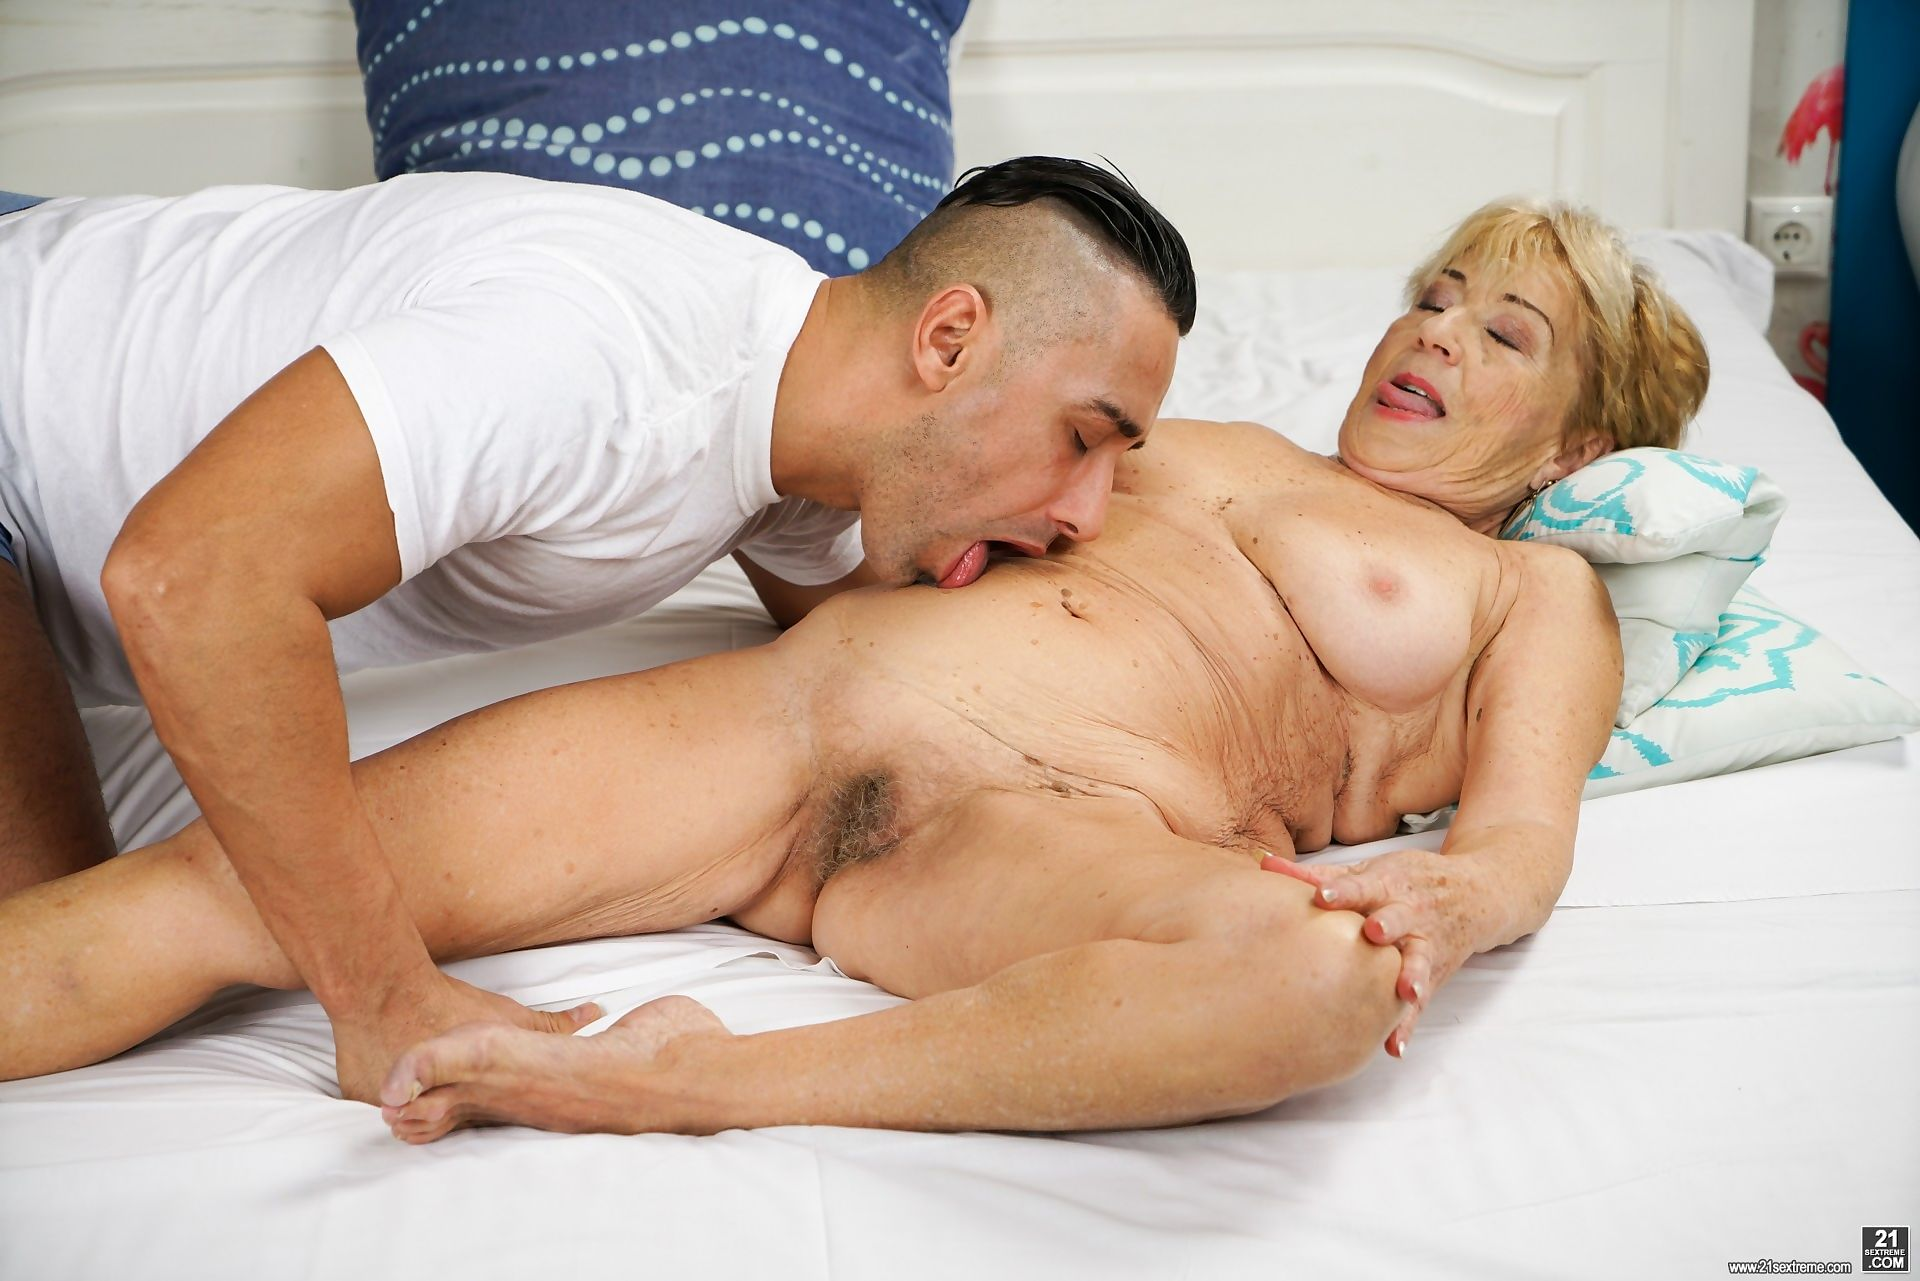 Young stud mugur is hard for malya, a busty granny with nymphomaniac tendencies. - part 701